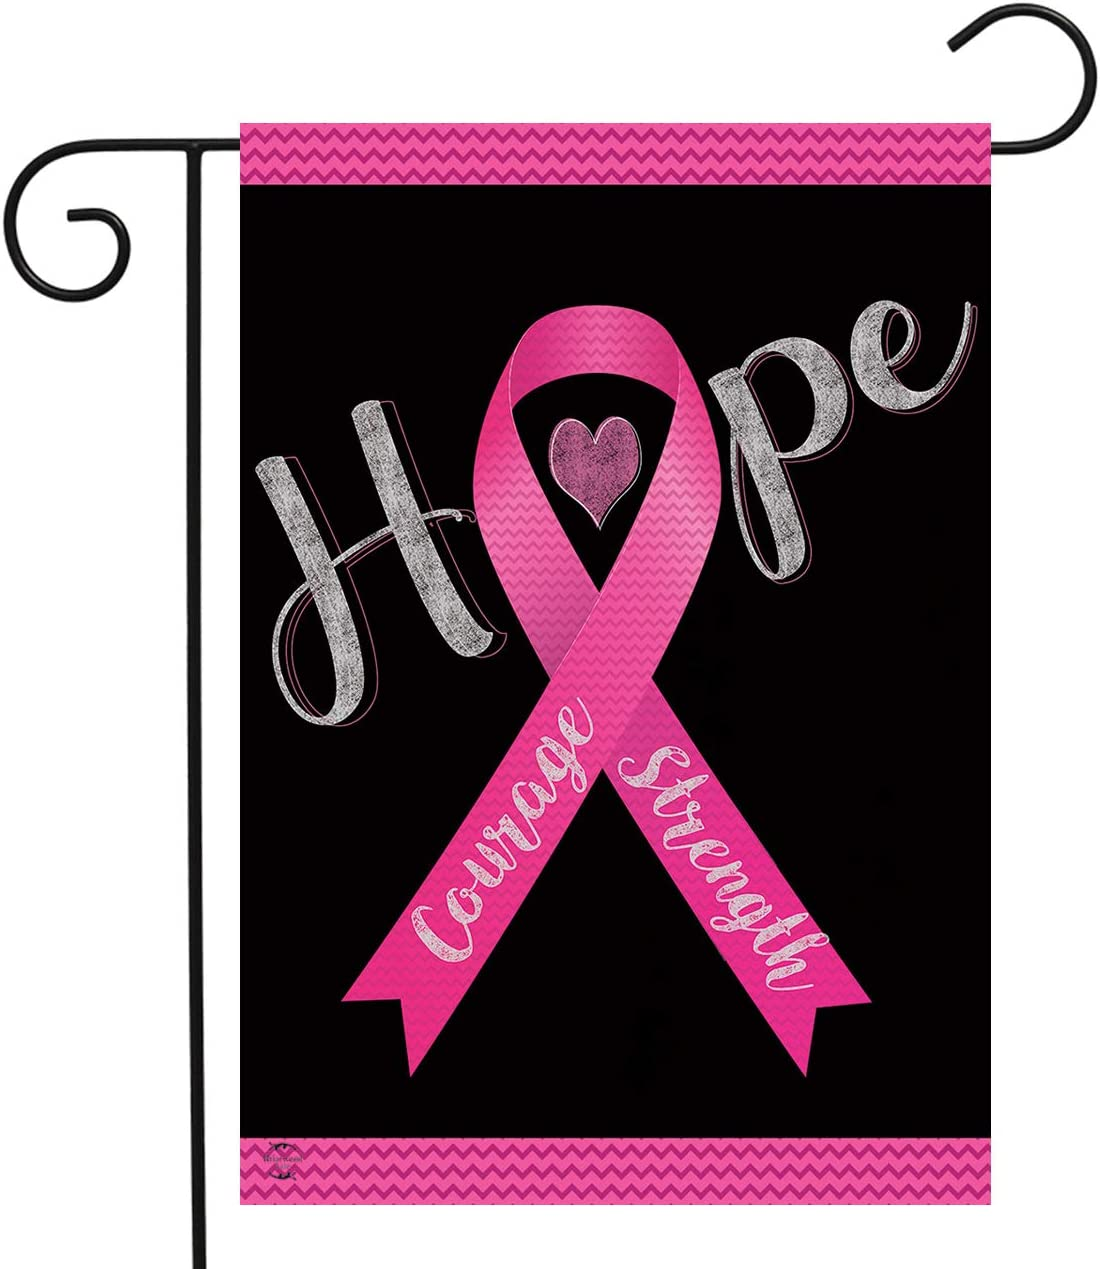 "Briarwood Lane Hope, Courage, Strength Garden Flag Breast Cancer Pink Ribbon 12.5"" x 18"""